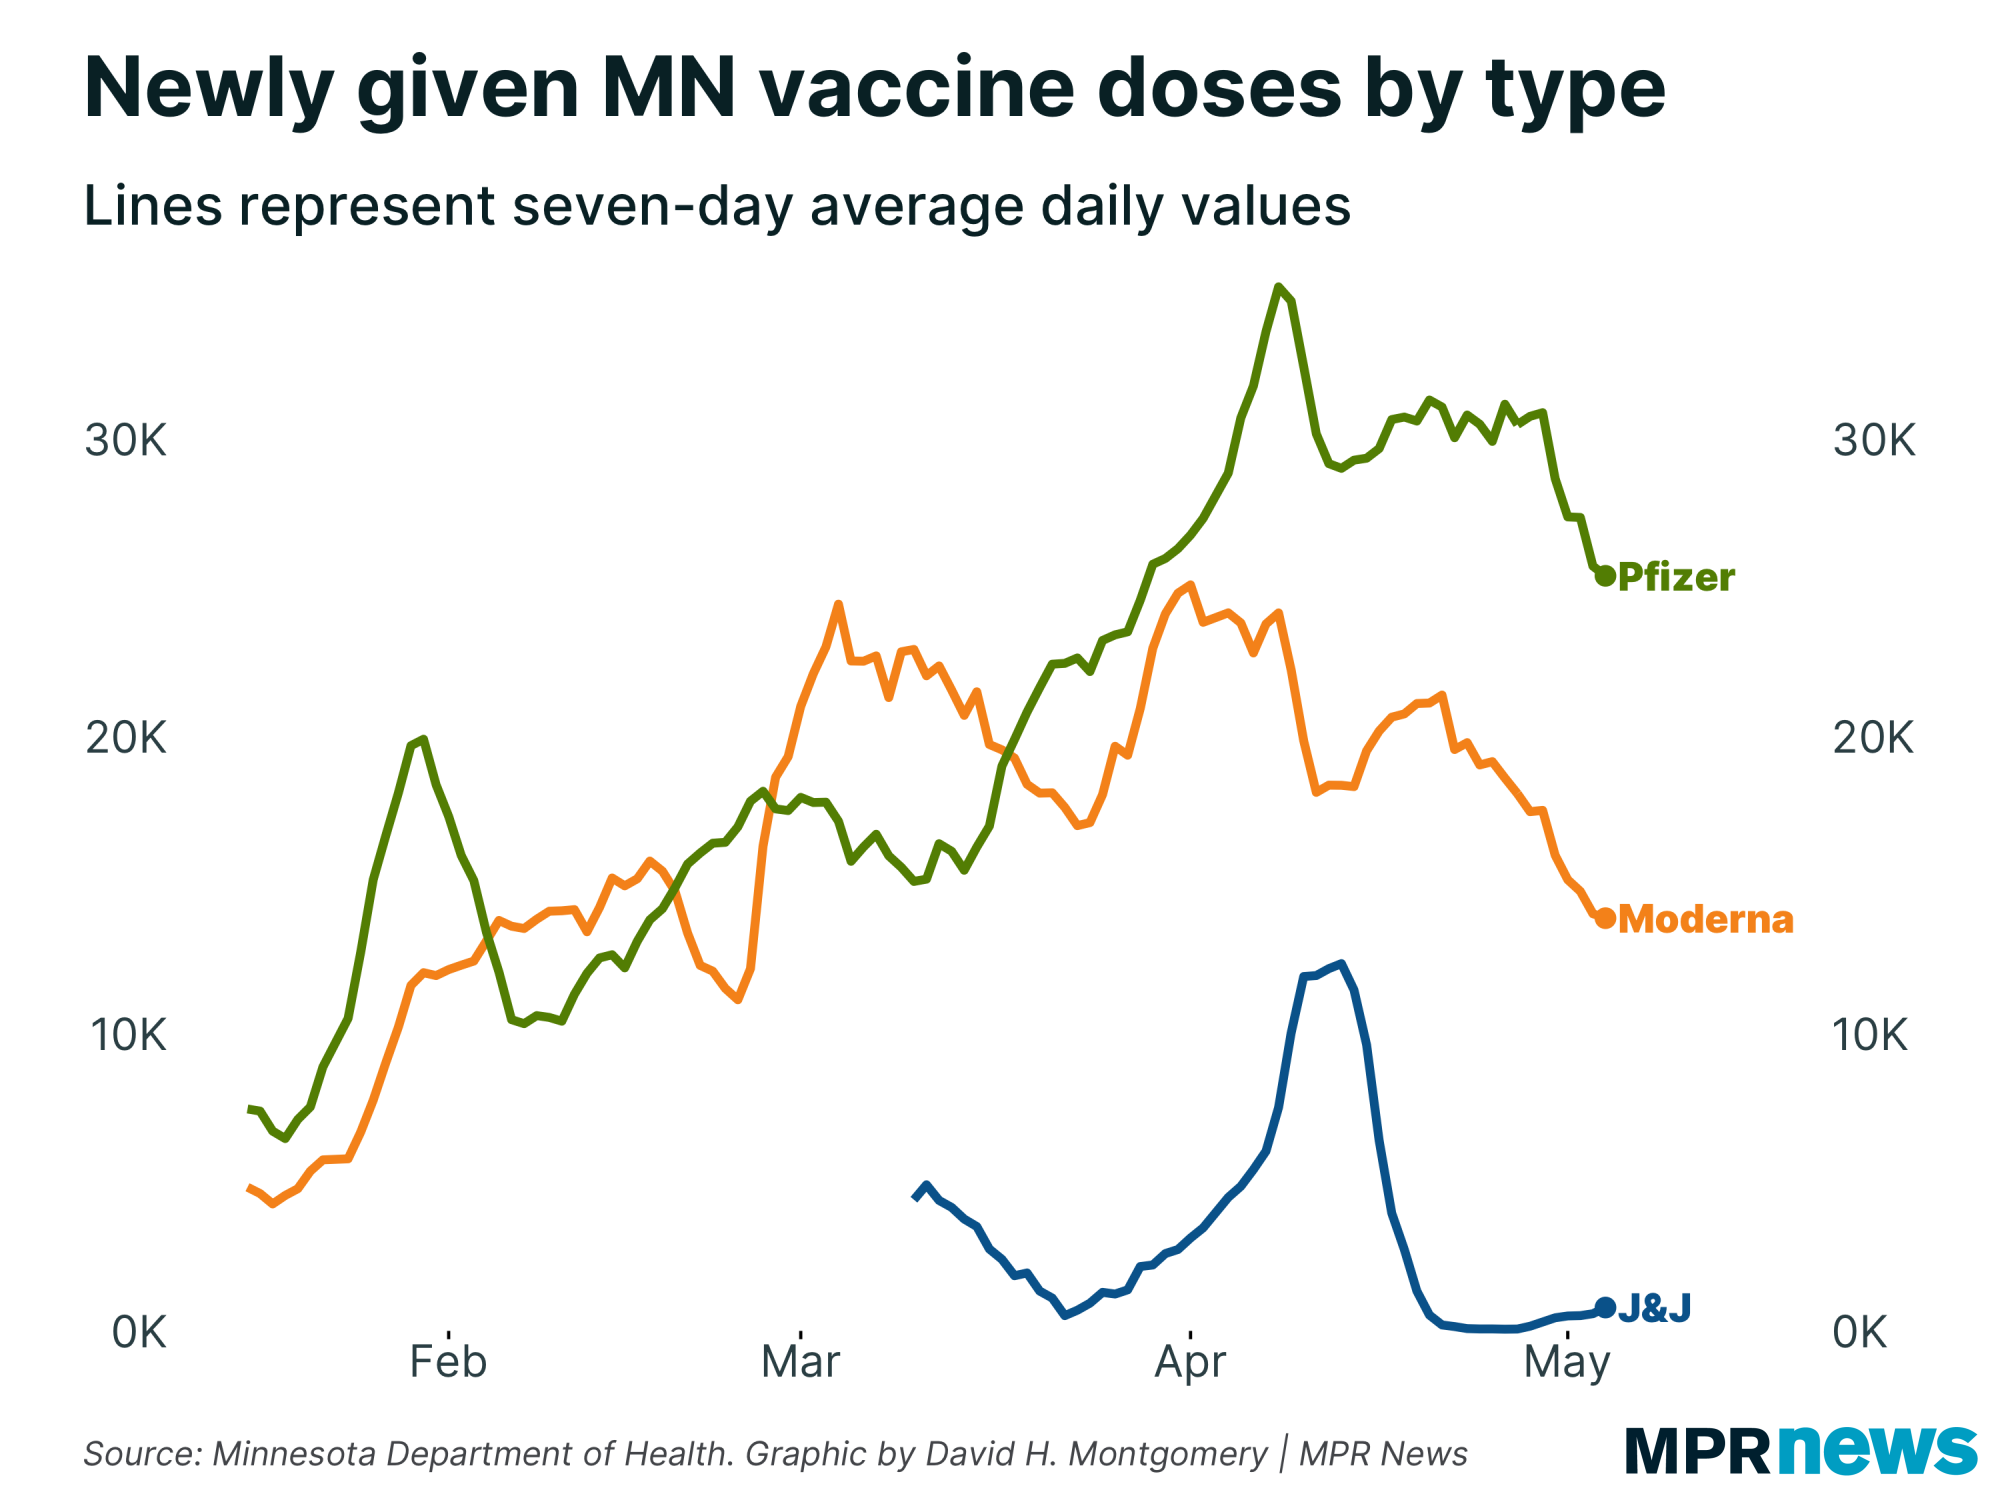 Newly administered MN vaccine doses by type